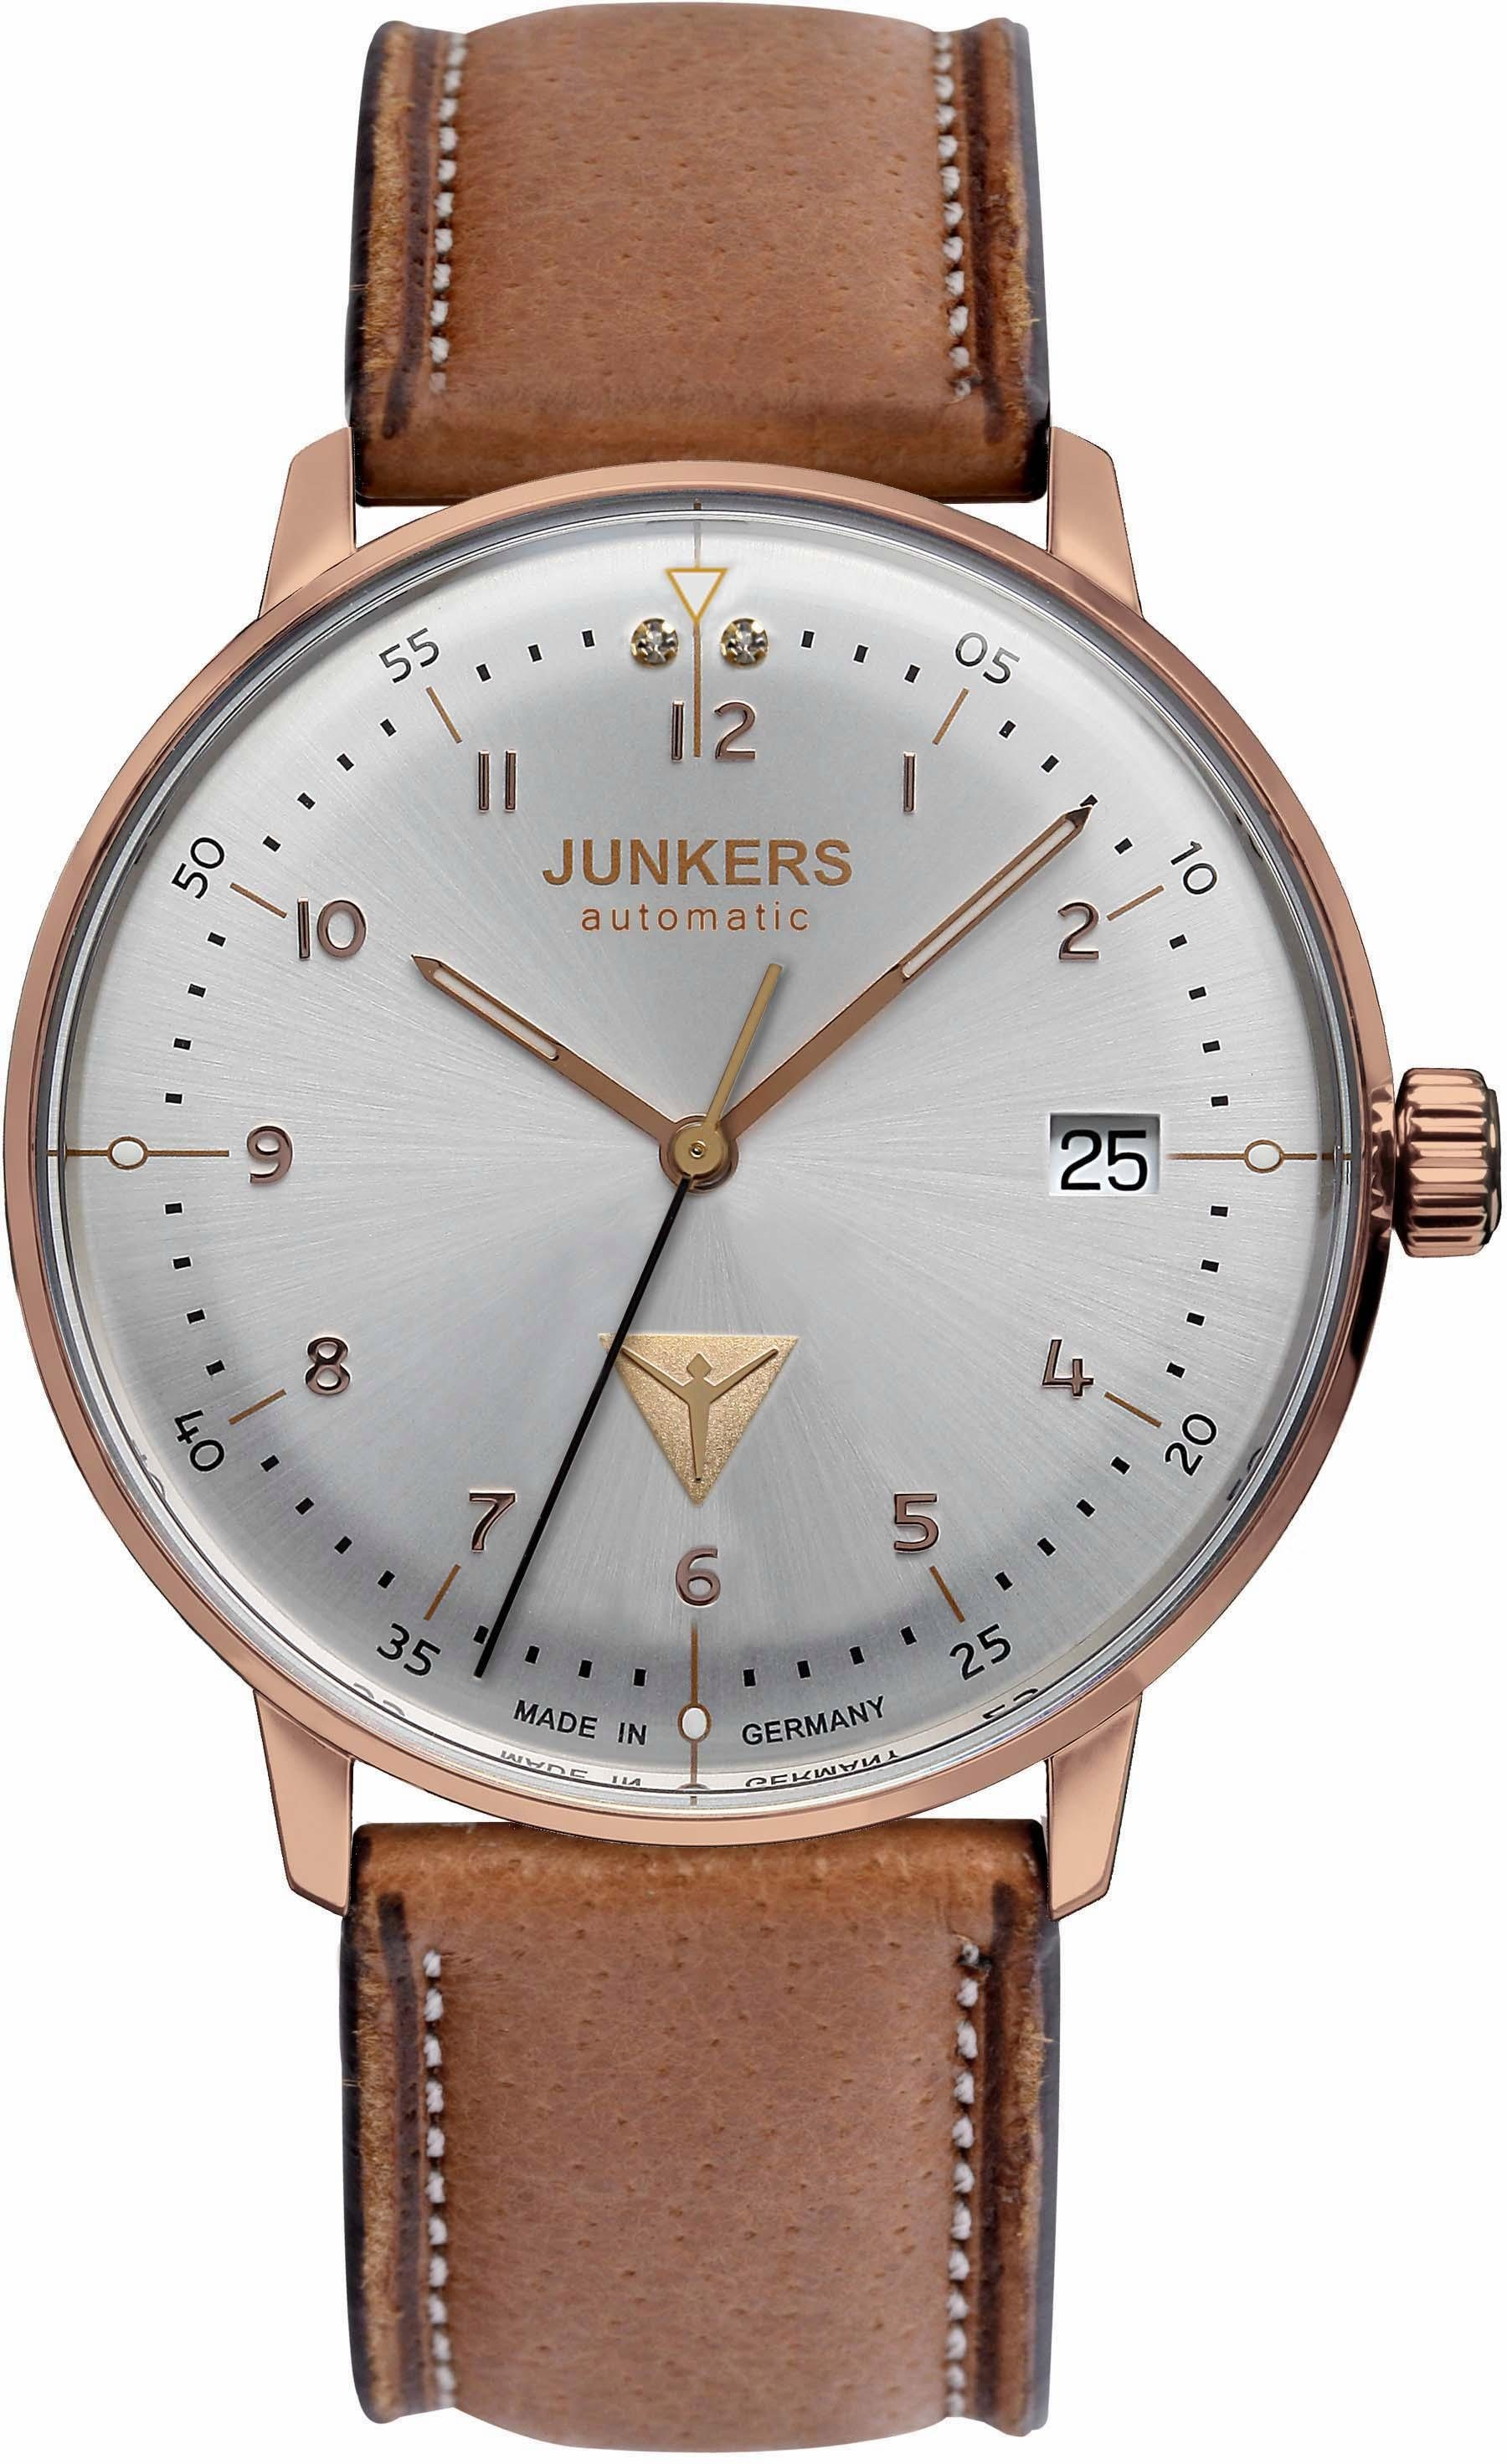 Junkers-Uhren Automatikuhr »Bauhaus, 60694«, made in Germany